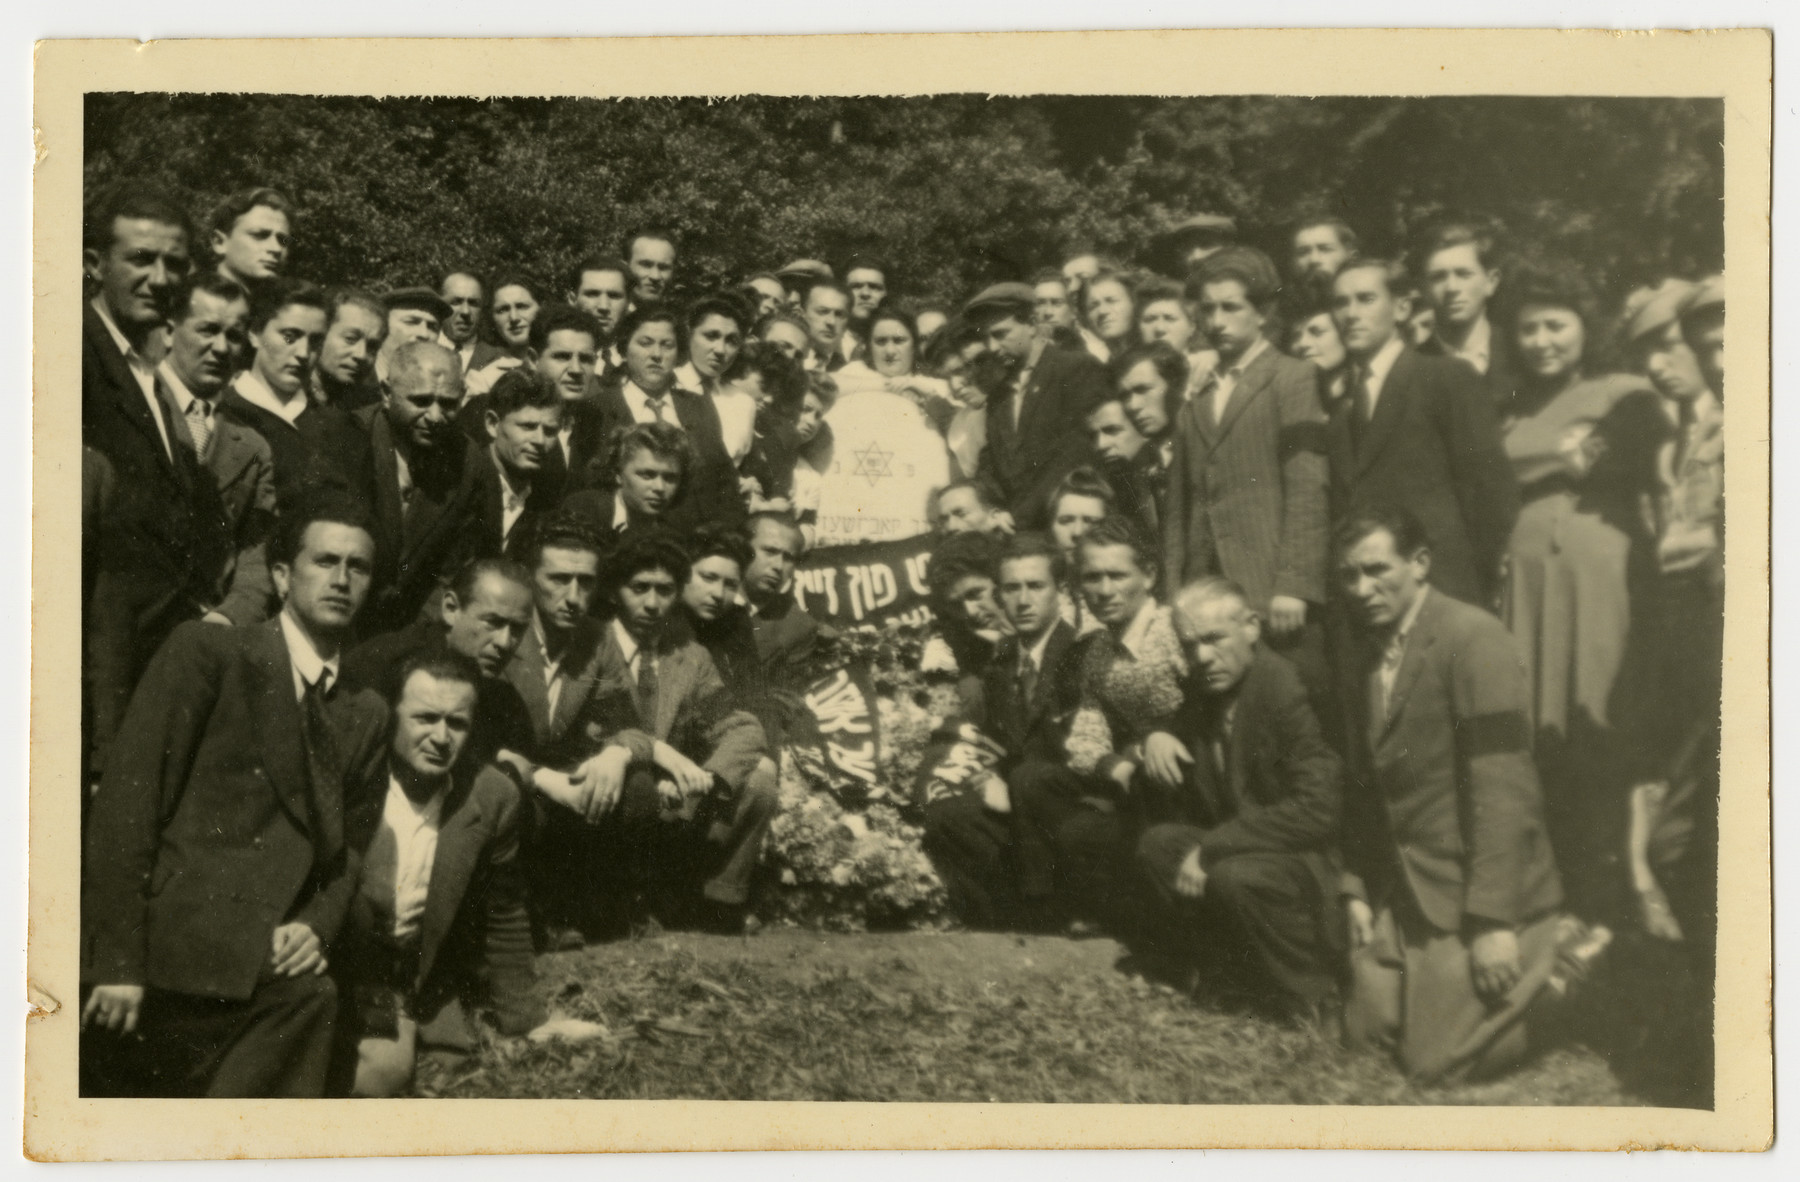 Displaced persons gather in remembrance of the Holocaust victims from Pruzhany, Poland.   In the center is a memorial in the shape of a tombstone, banners and a wreath.